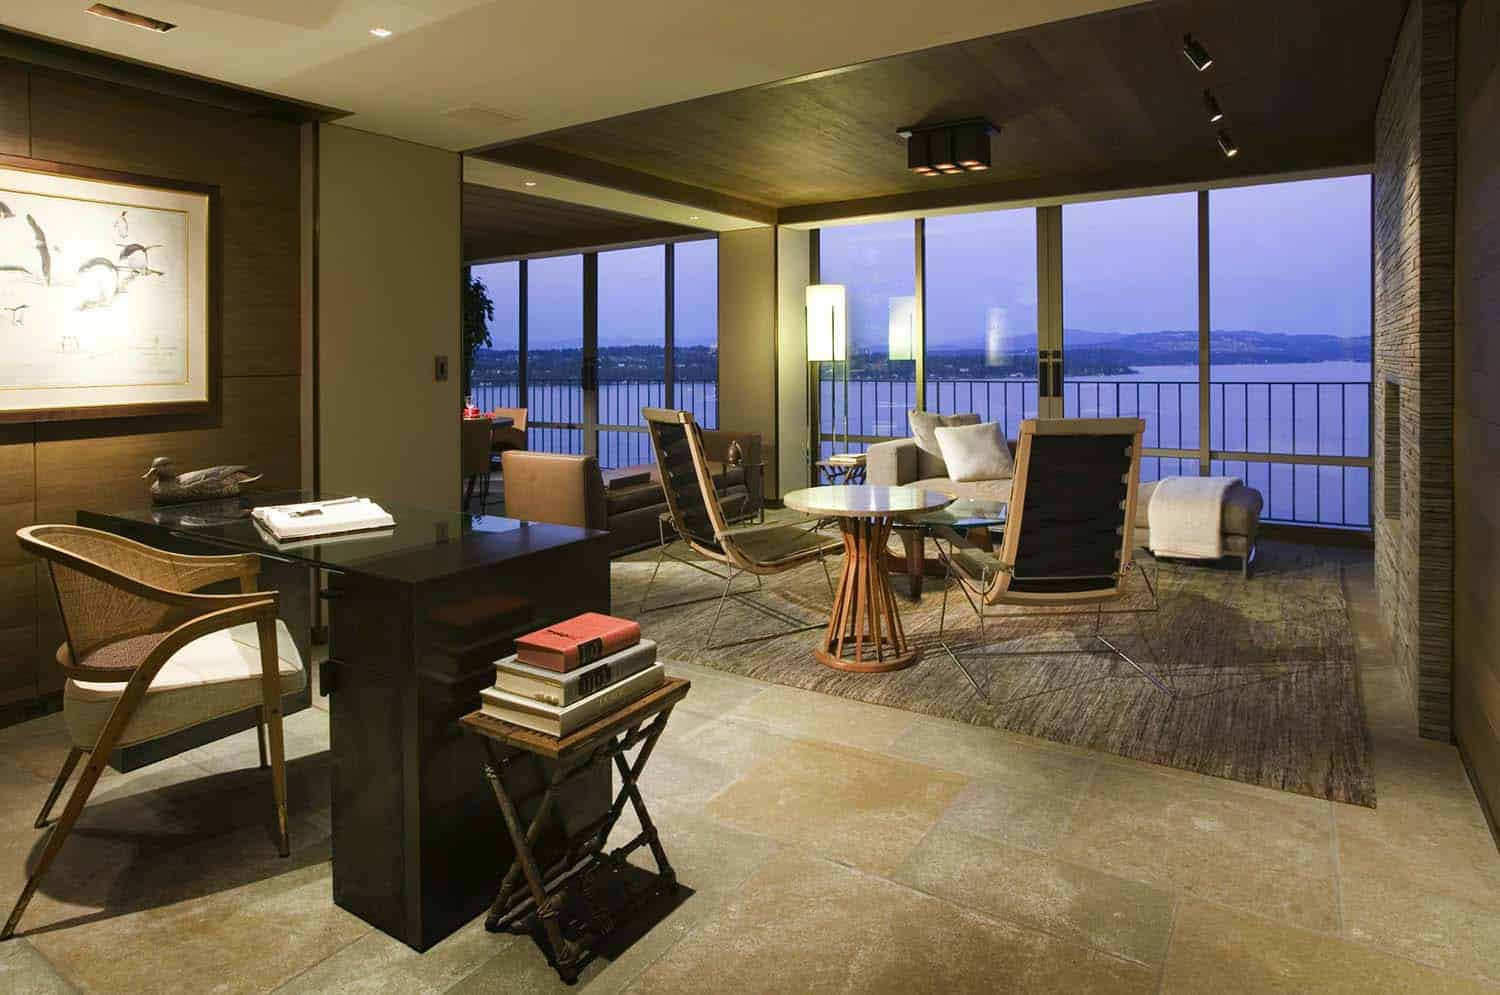 Condo capturing views over Lake Washington gets sleek makeover